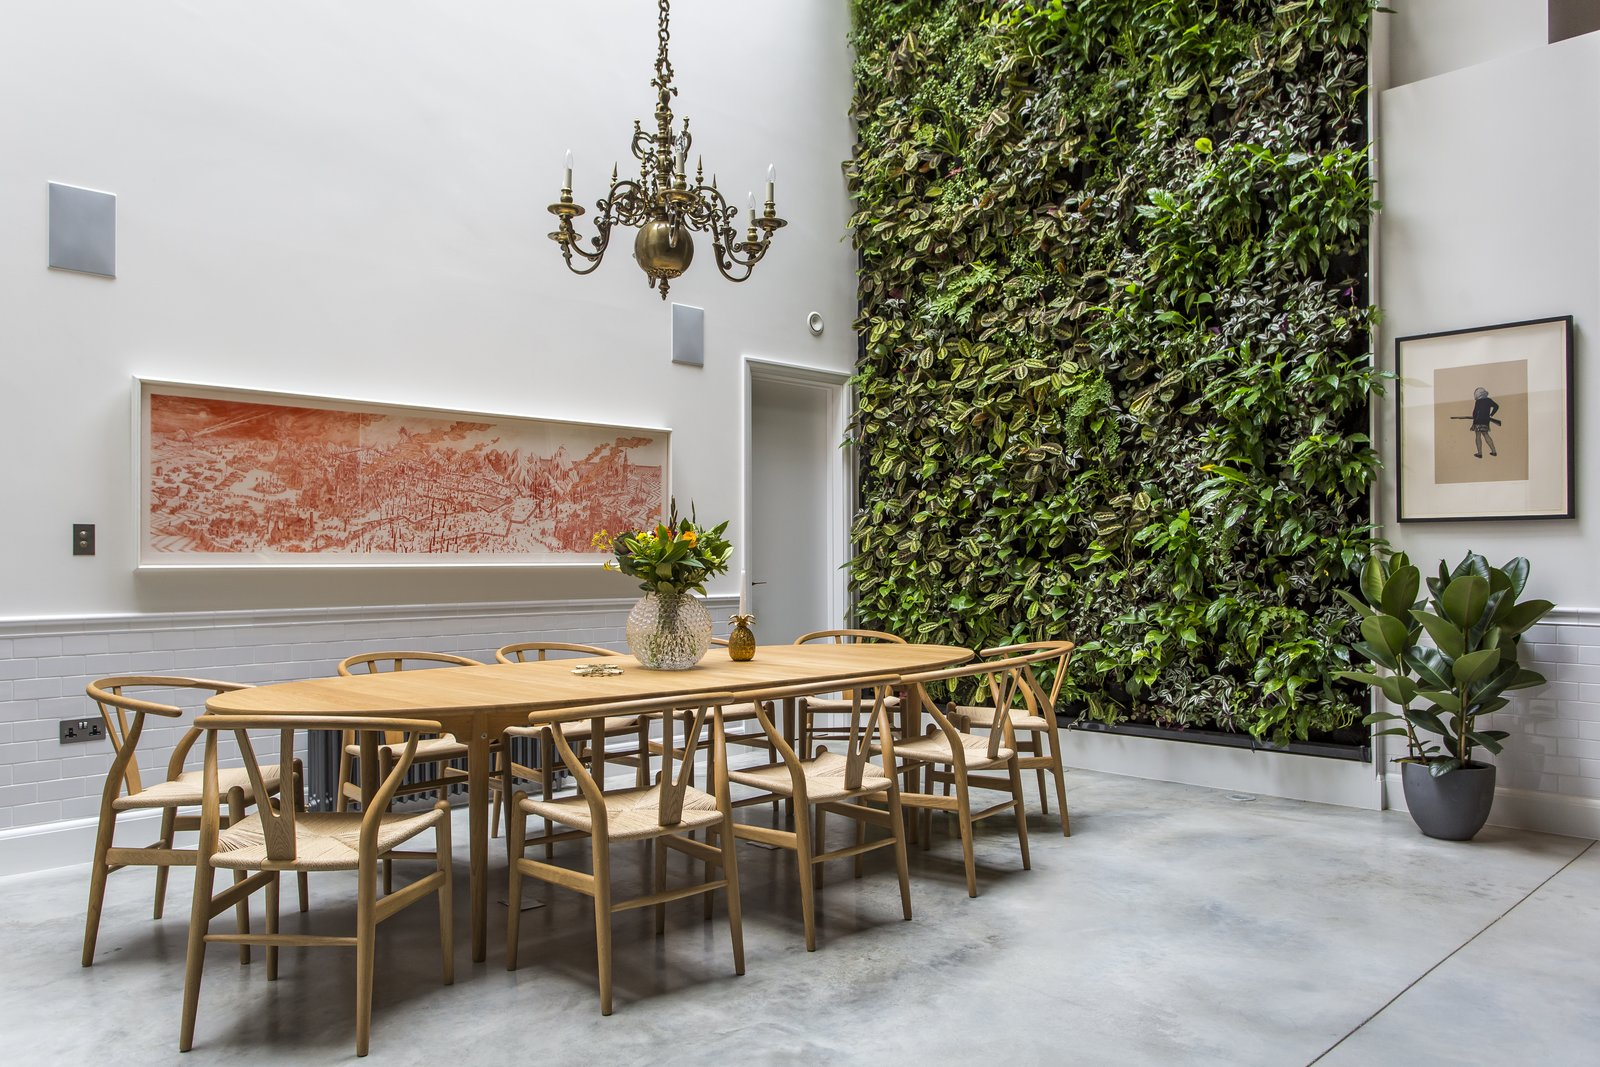 Dining Room, Pendant Lighting, Table, Chair, and Concrete Floor The living wall designed by Scotscape provides a refreshing backdrop to the dining area.  Photo 7 of 8 in Stay in a Converted Victorian Cooperage in London